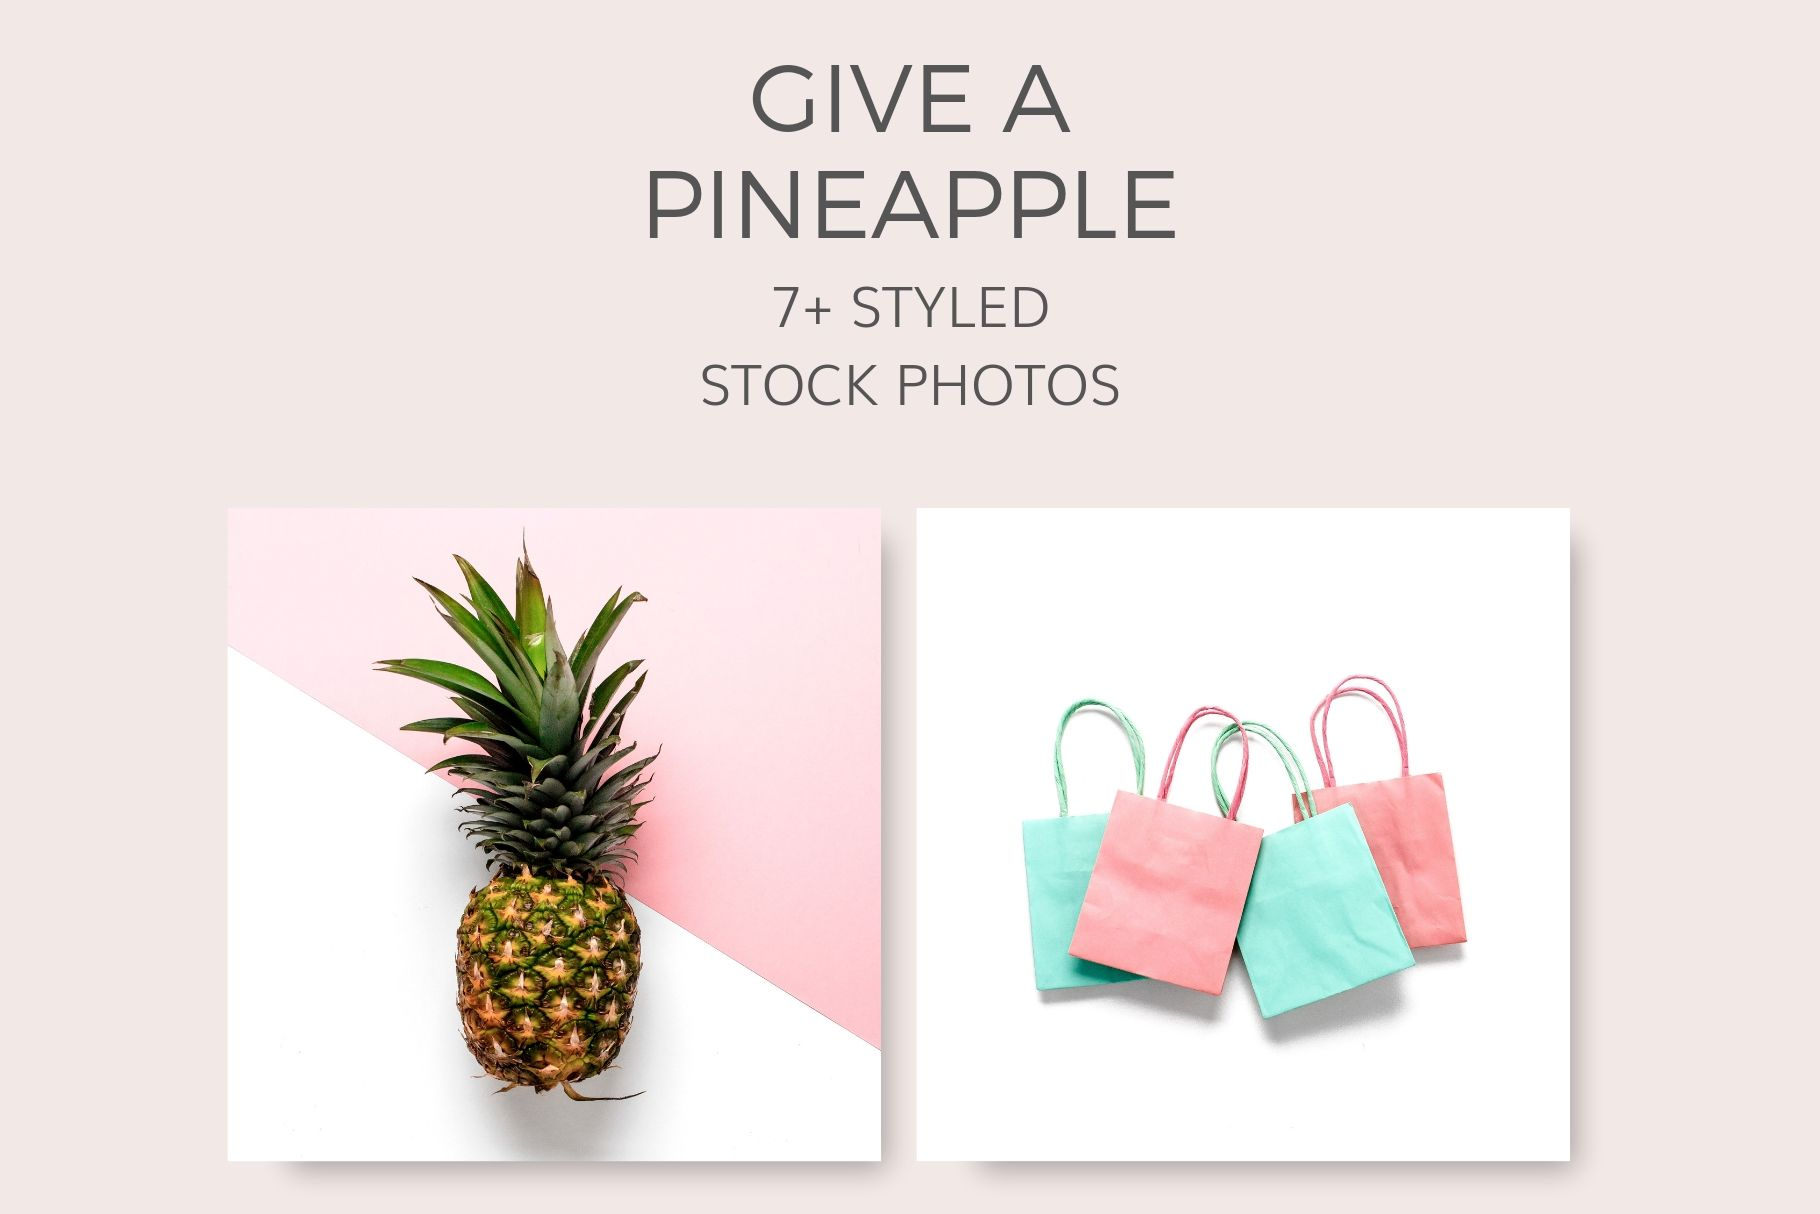 pineapple_stock_photos